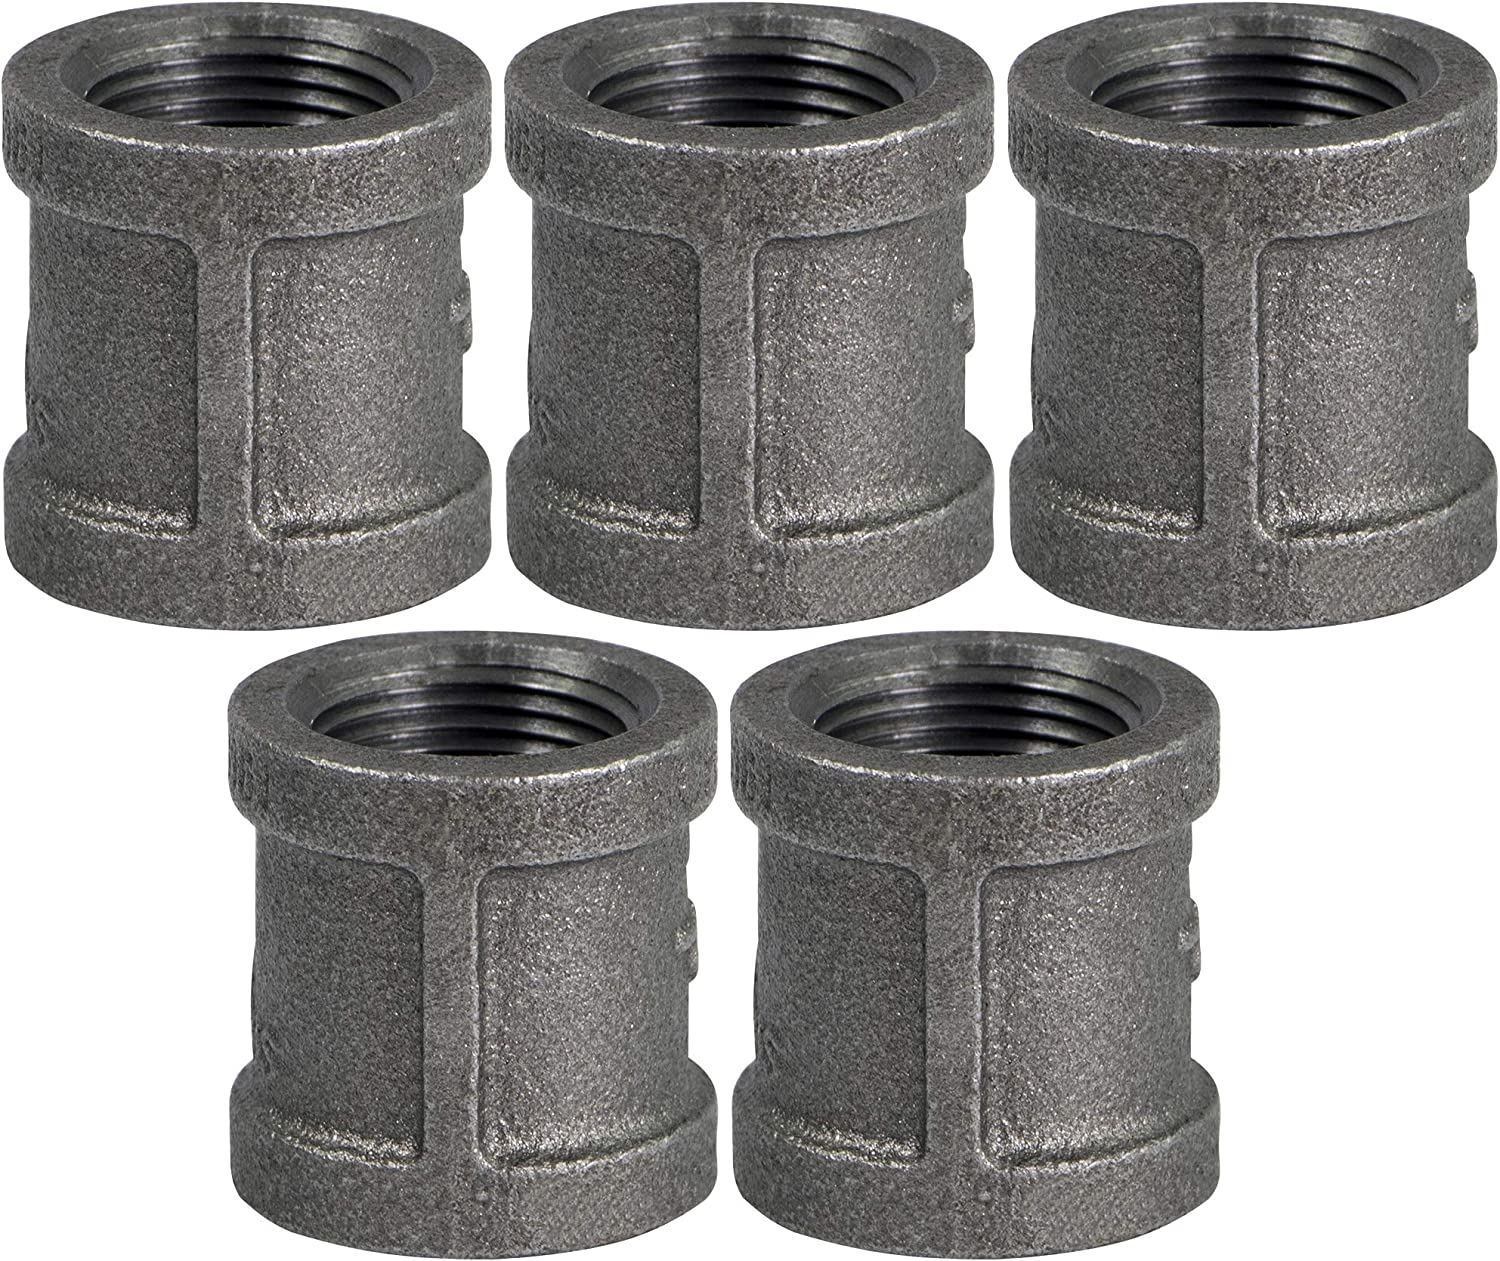 discount SUPPLY GIANT BMCPL038-5 coupling Black Inch 3 Max 88% OFF 8